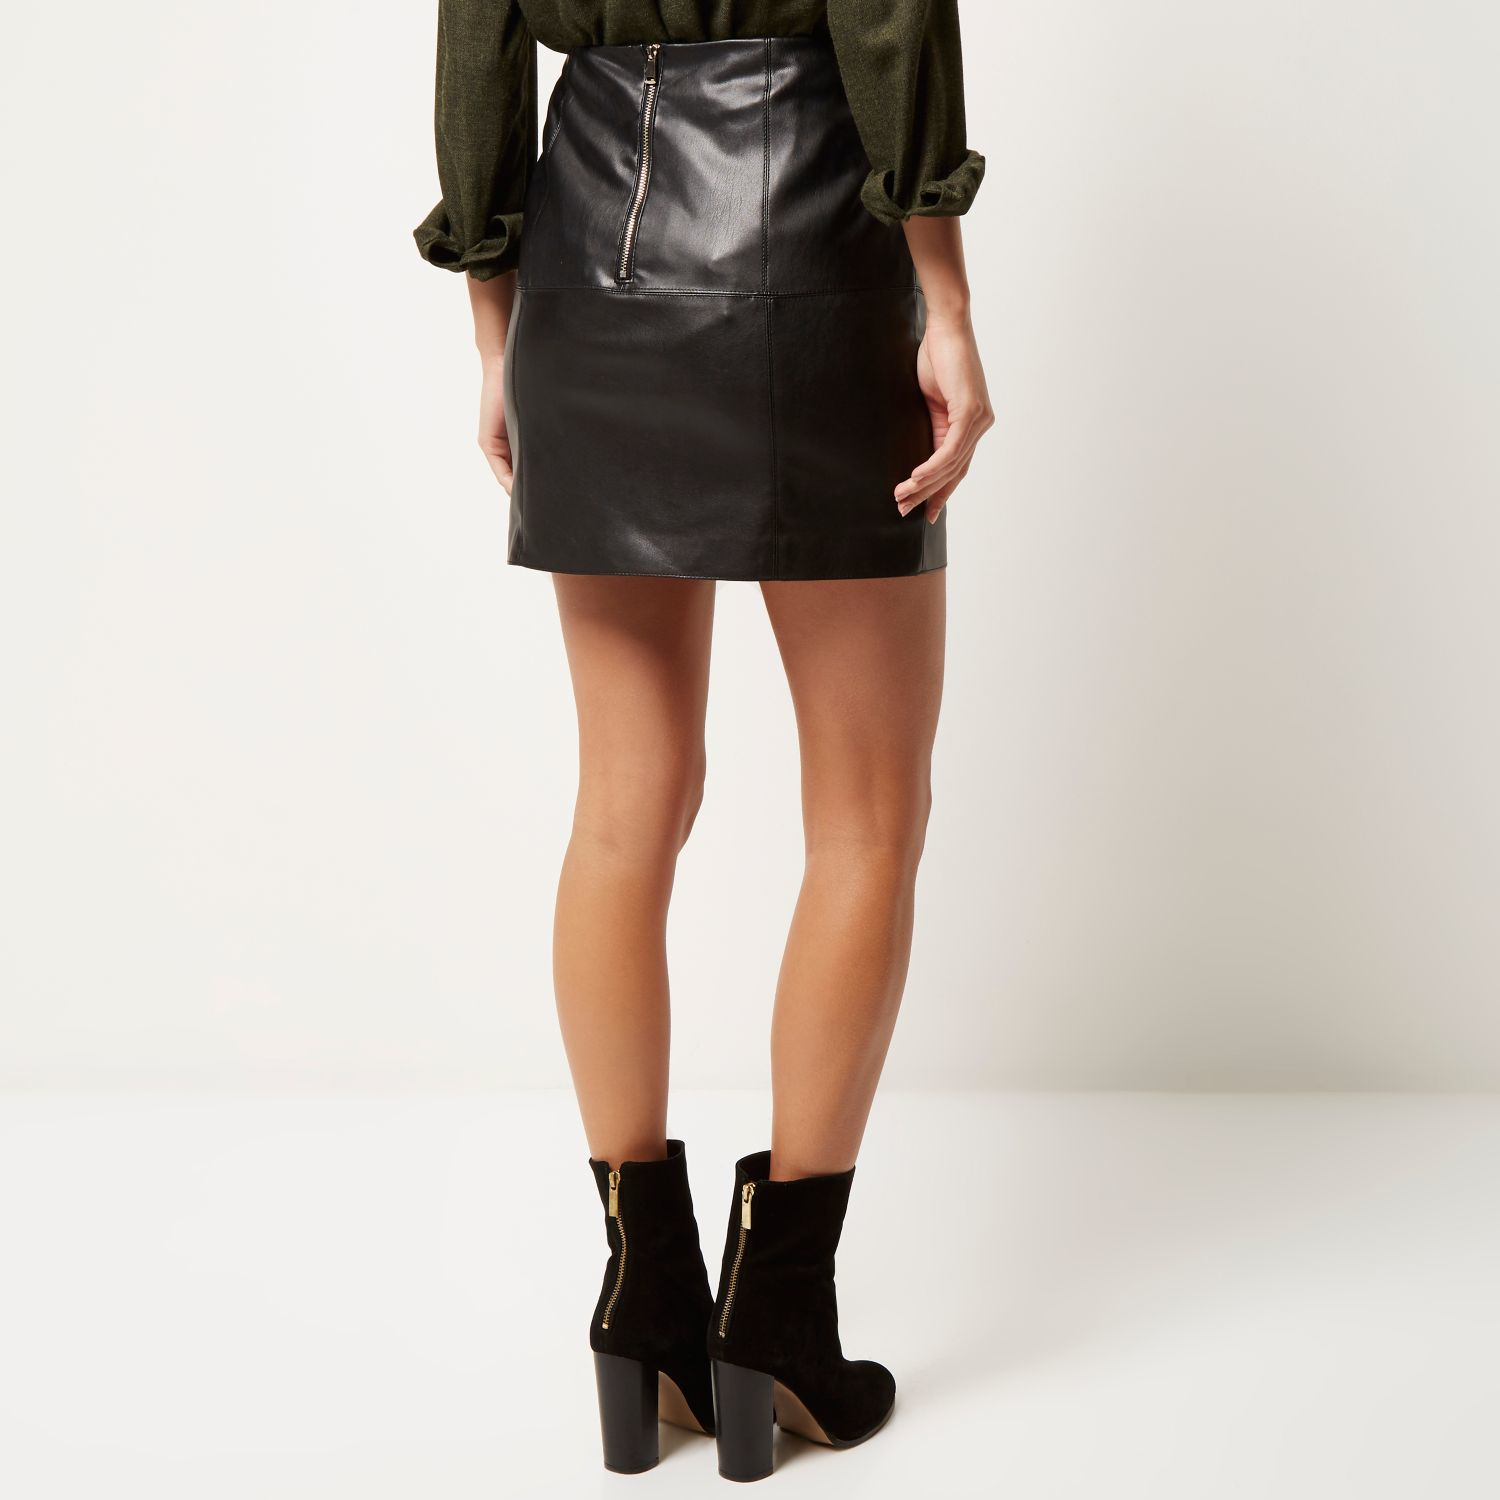 79df95d63 River Island Black Leather-look Mini Skirt in Black - Lyst